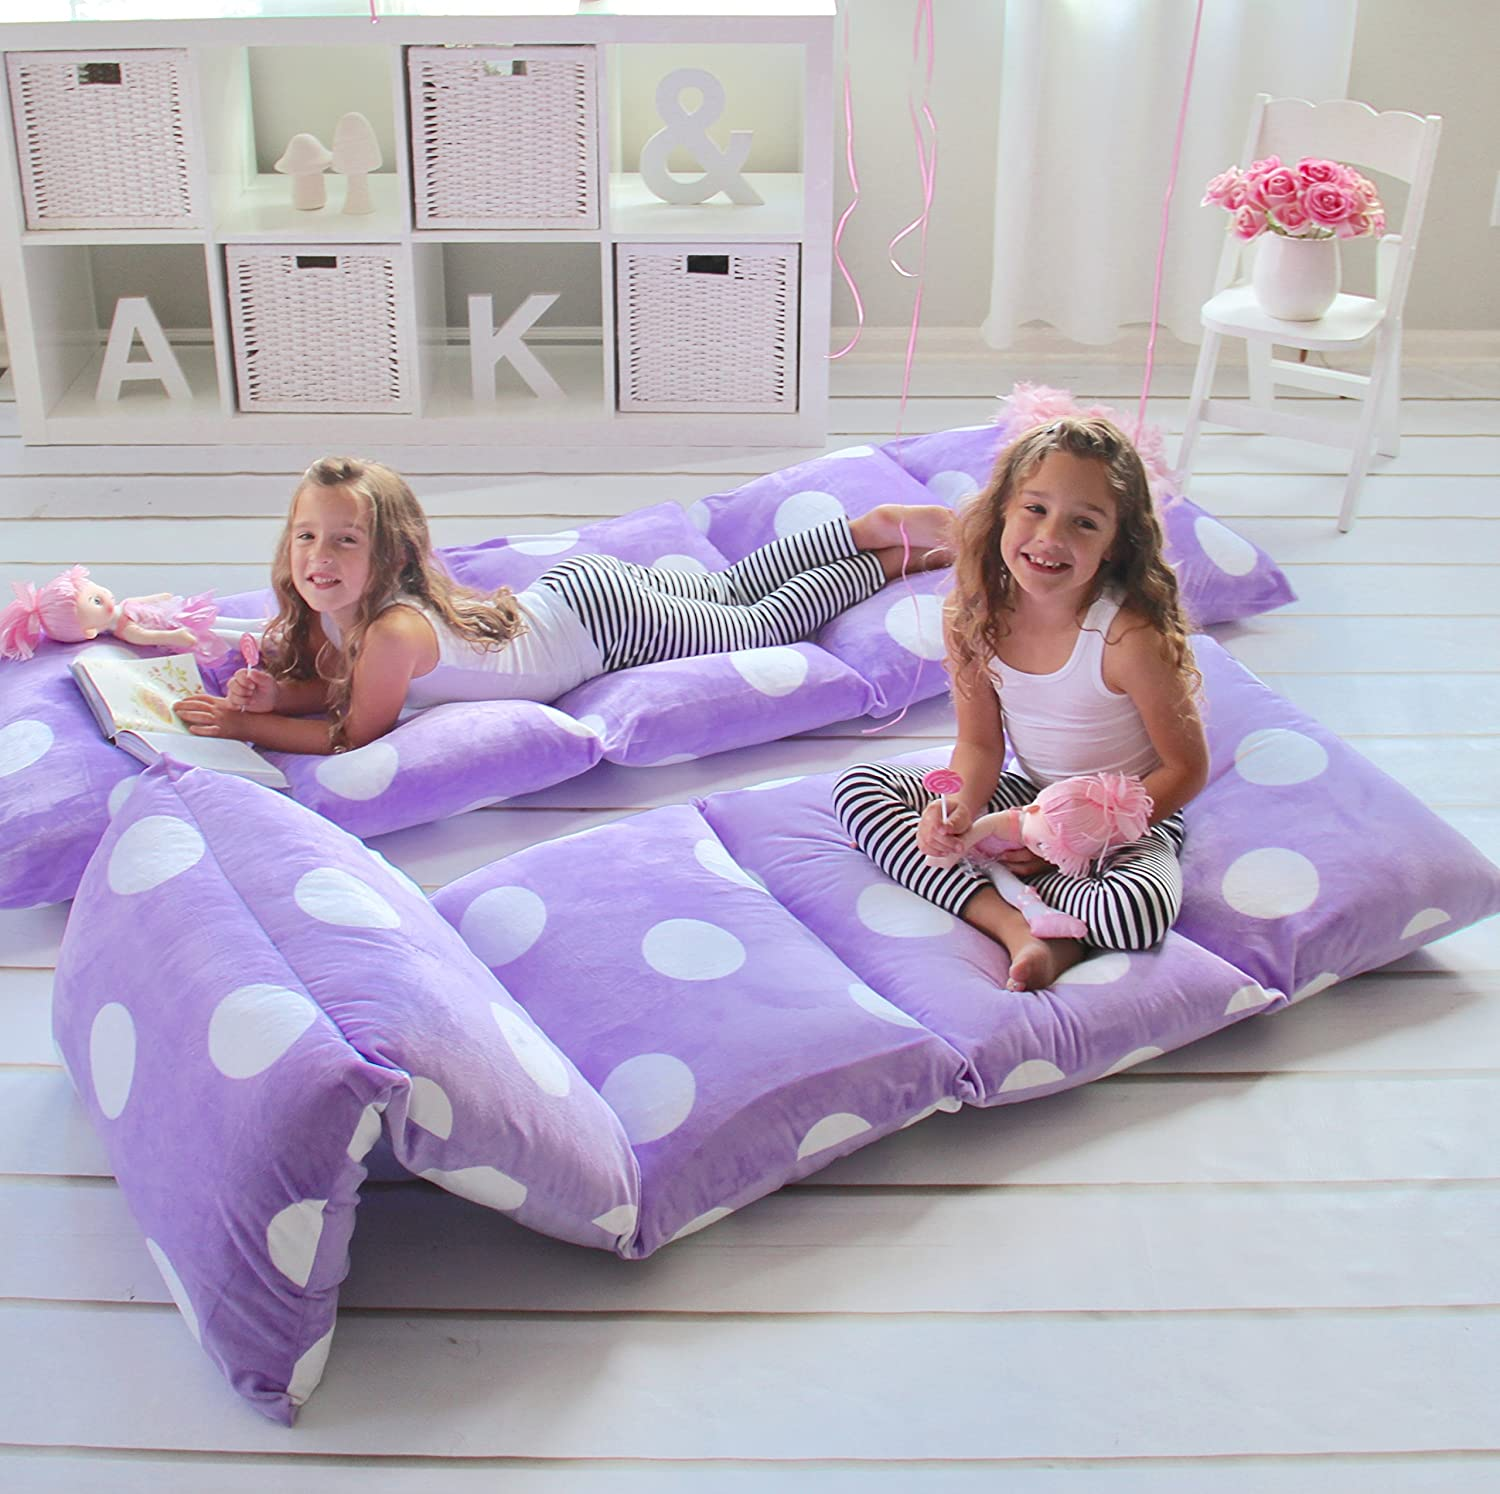 Pink Soft Plush,Perfect for Sleepovers Party,Lounger for Reading,Playing.Cover Only Kids Floor Pillow Bed Cover